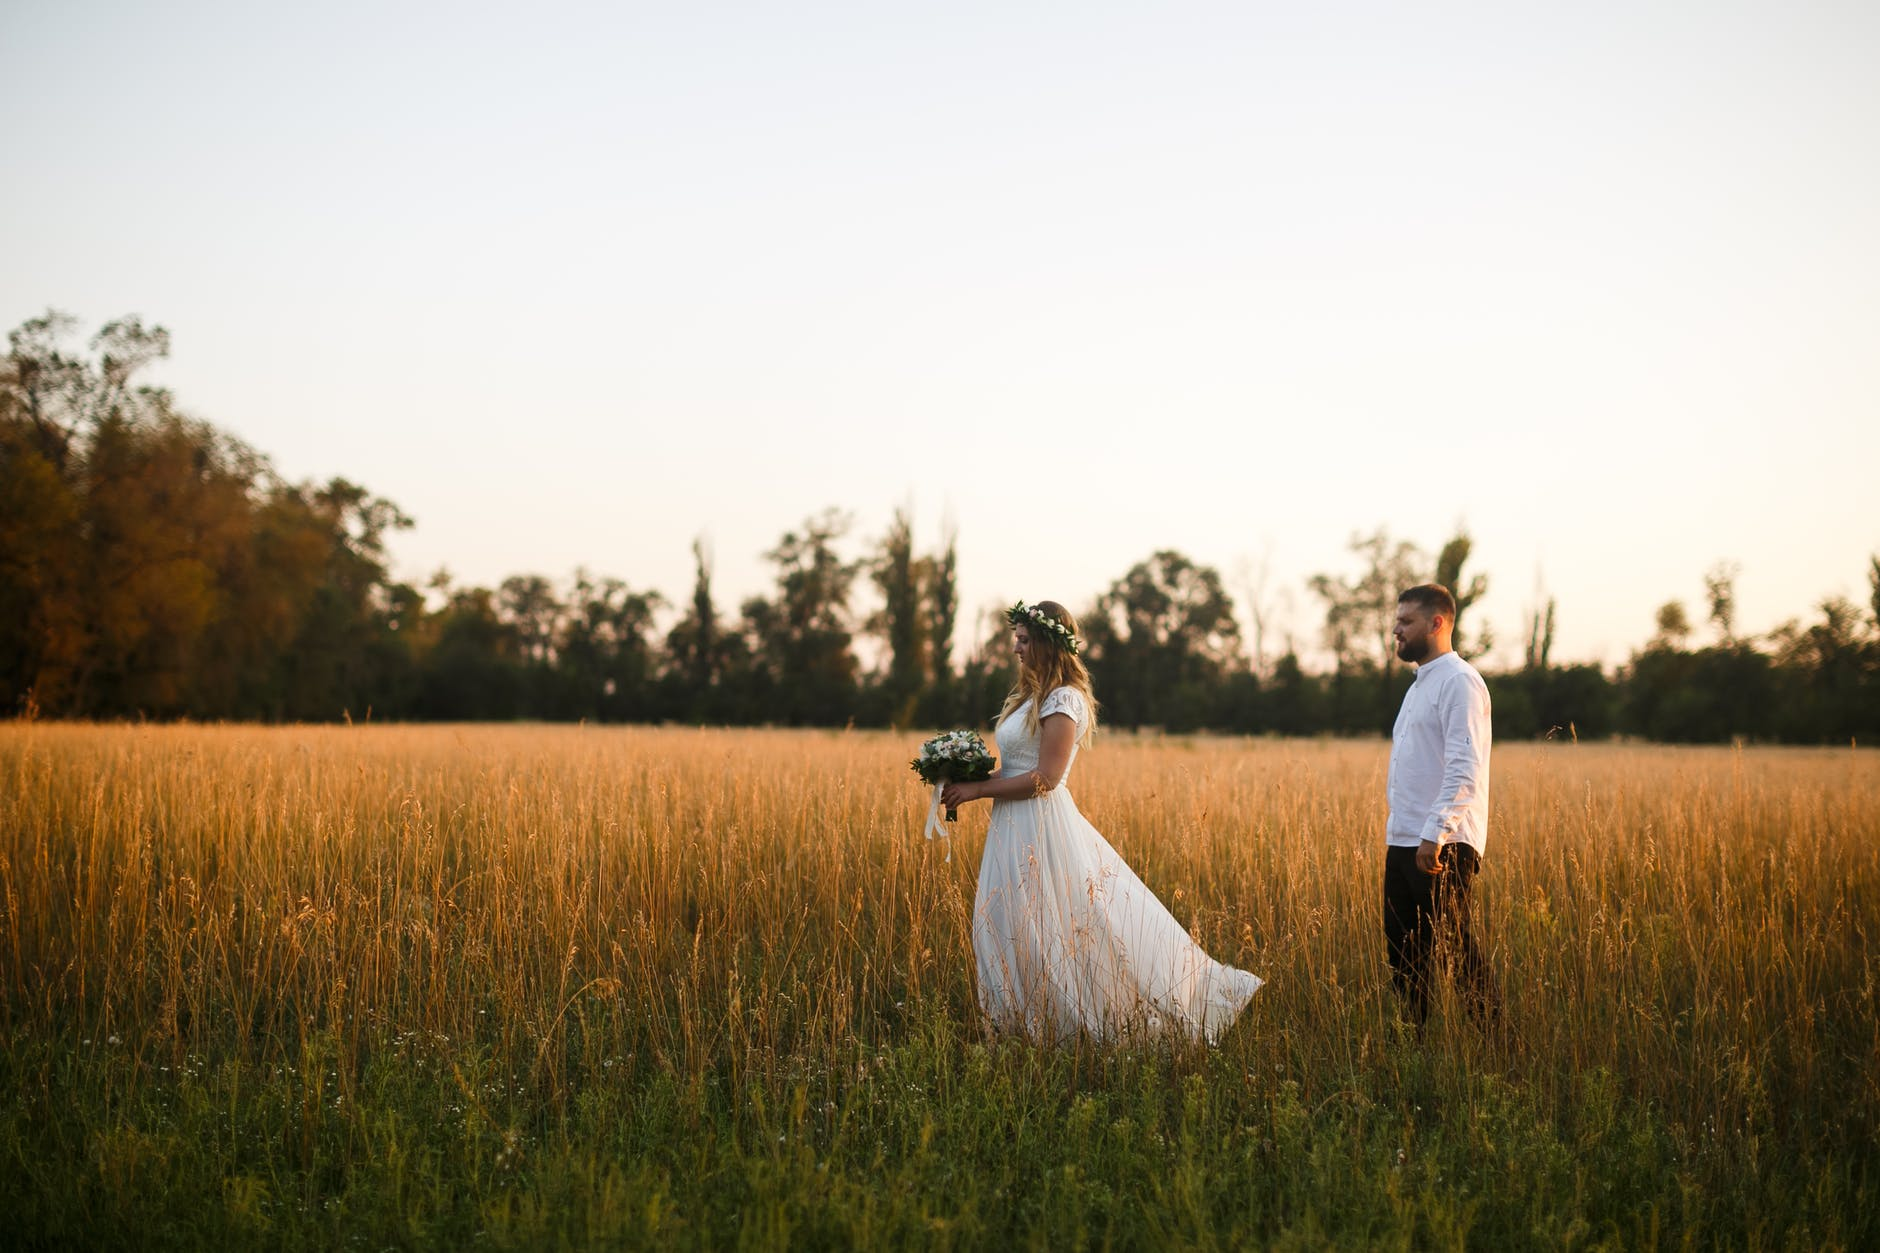 How to Honor God in Your Marriage